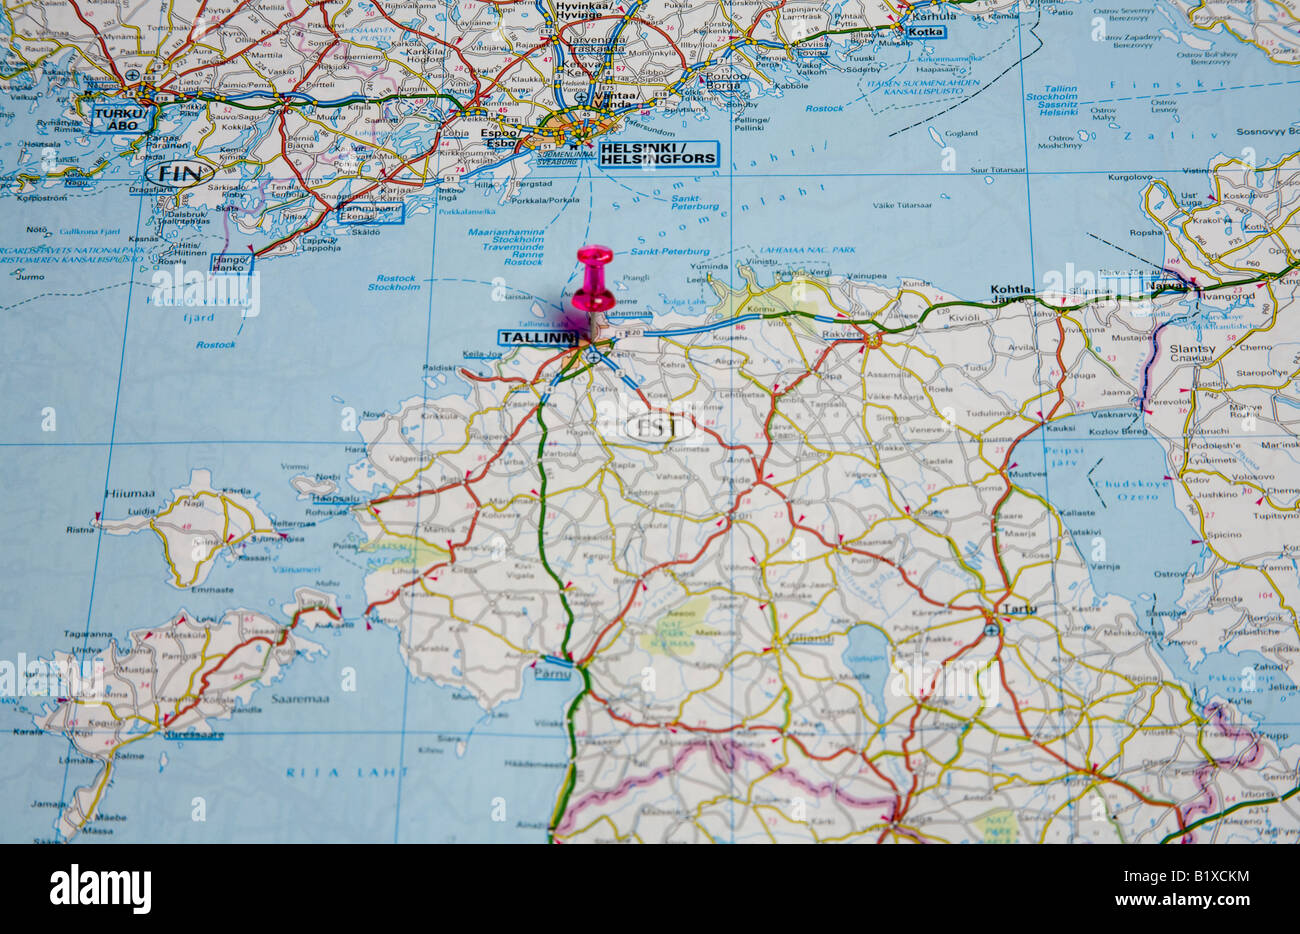 Norway On Europe Map.Road Map Of Oslo Norway Europe Stock Photo 18405736 Alamy